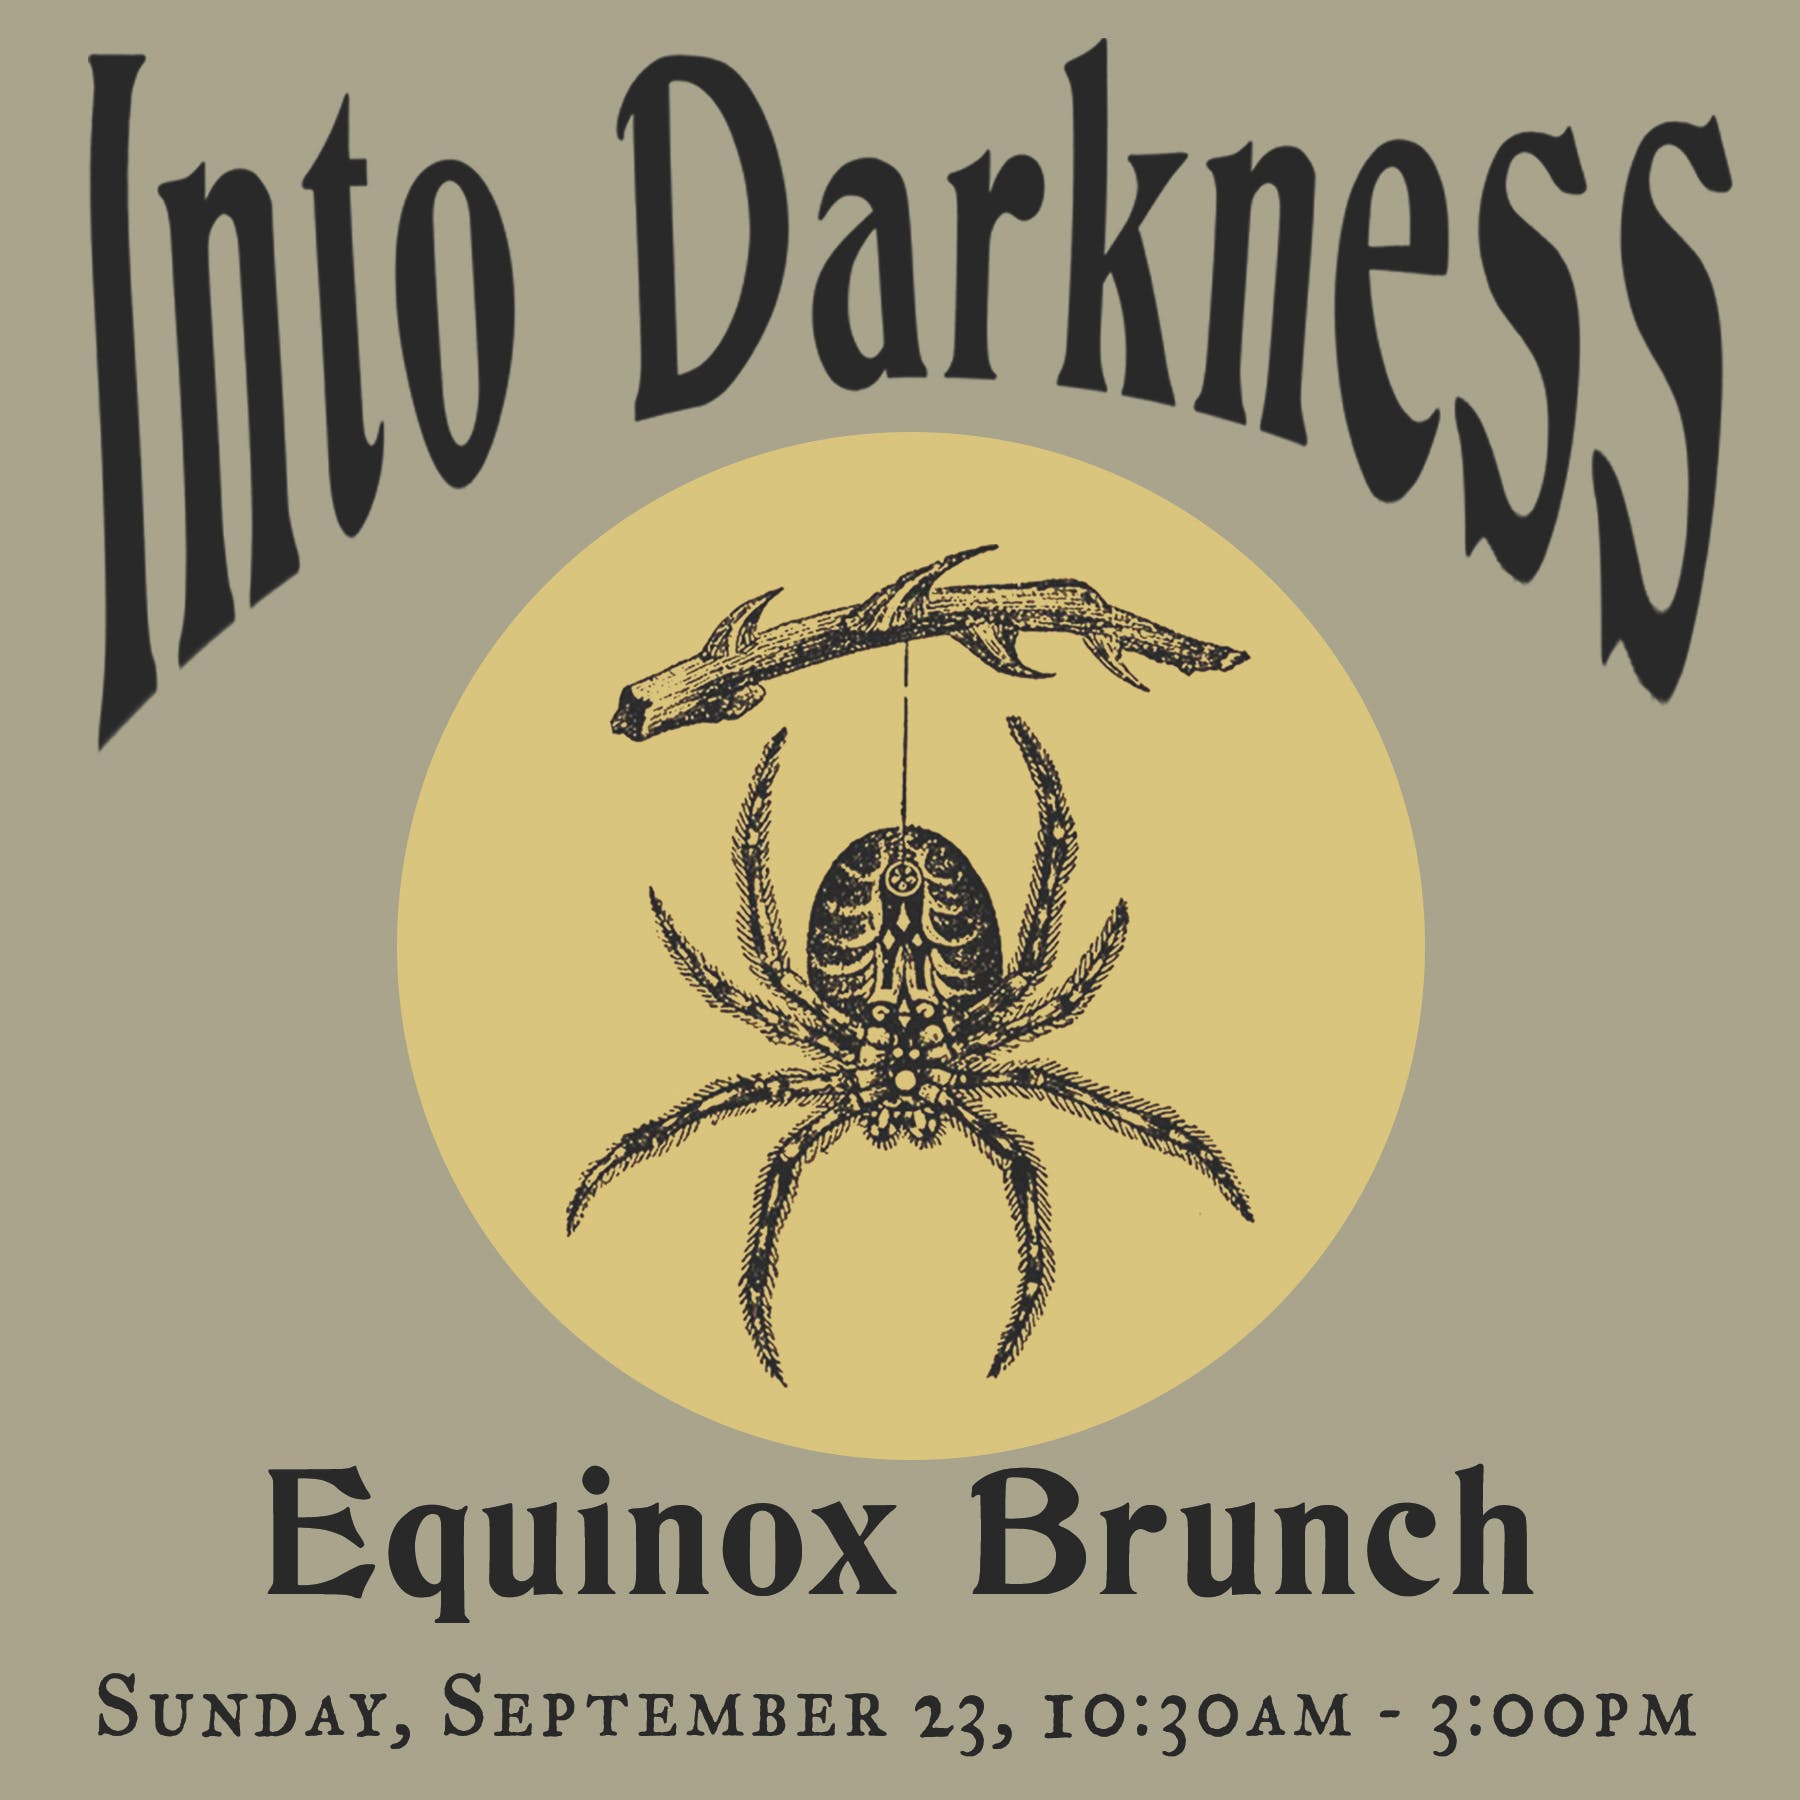 Into Darkness Equinox Brunch